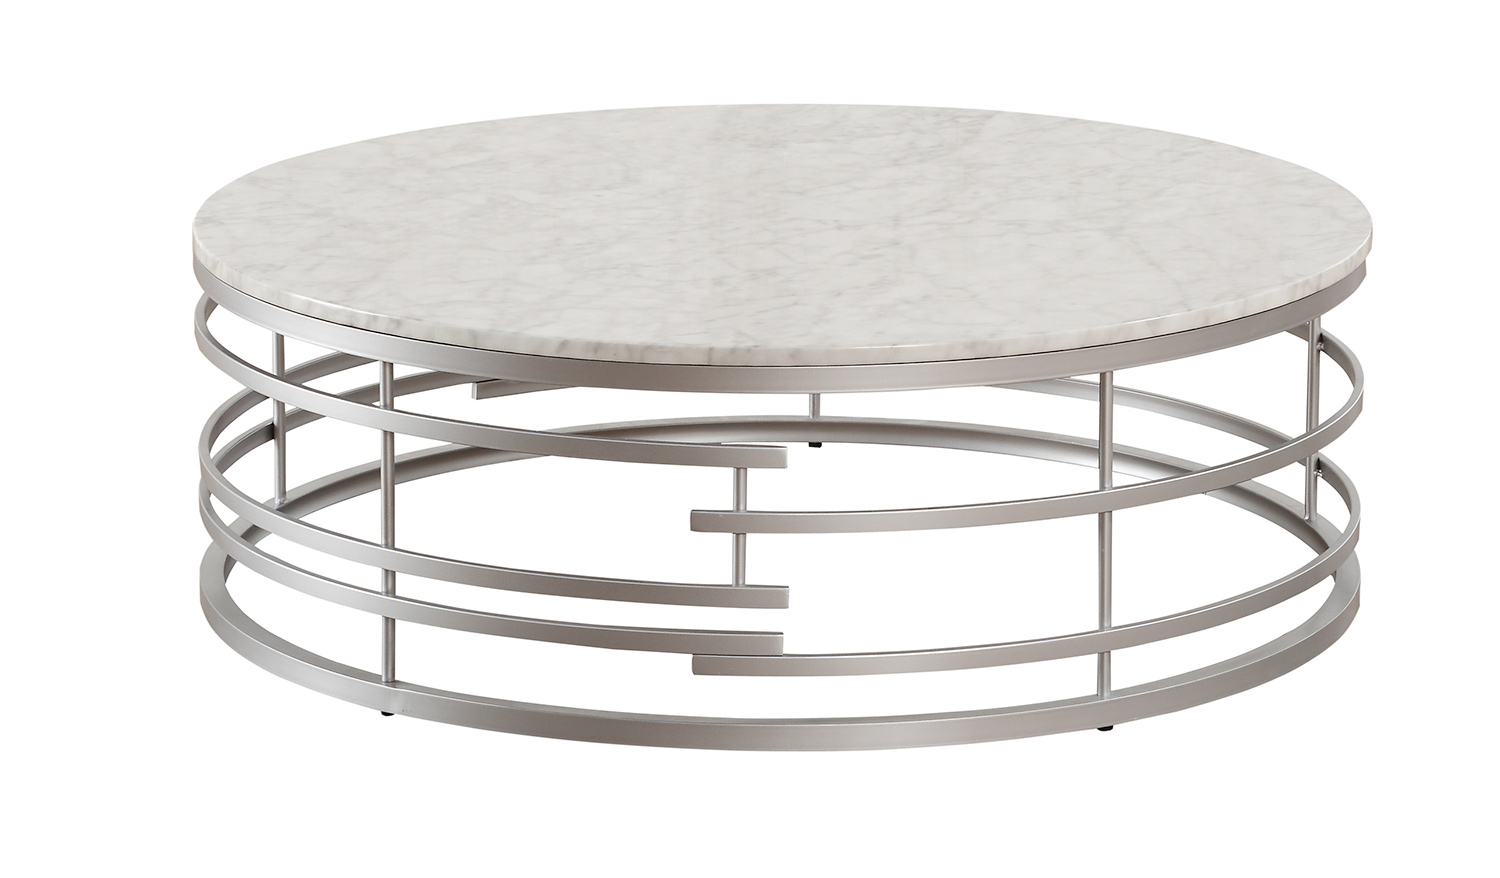 Homelegance Brassica Large Round Cocktail/Coffee Table with Faux Marble Top - Silver - White Marble Top